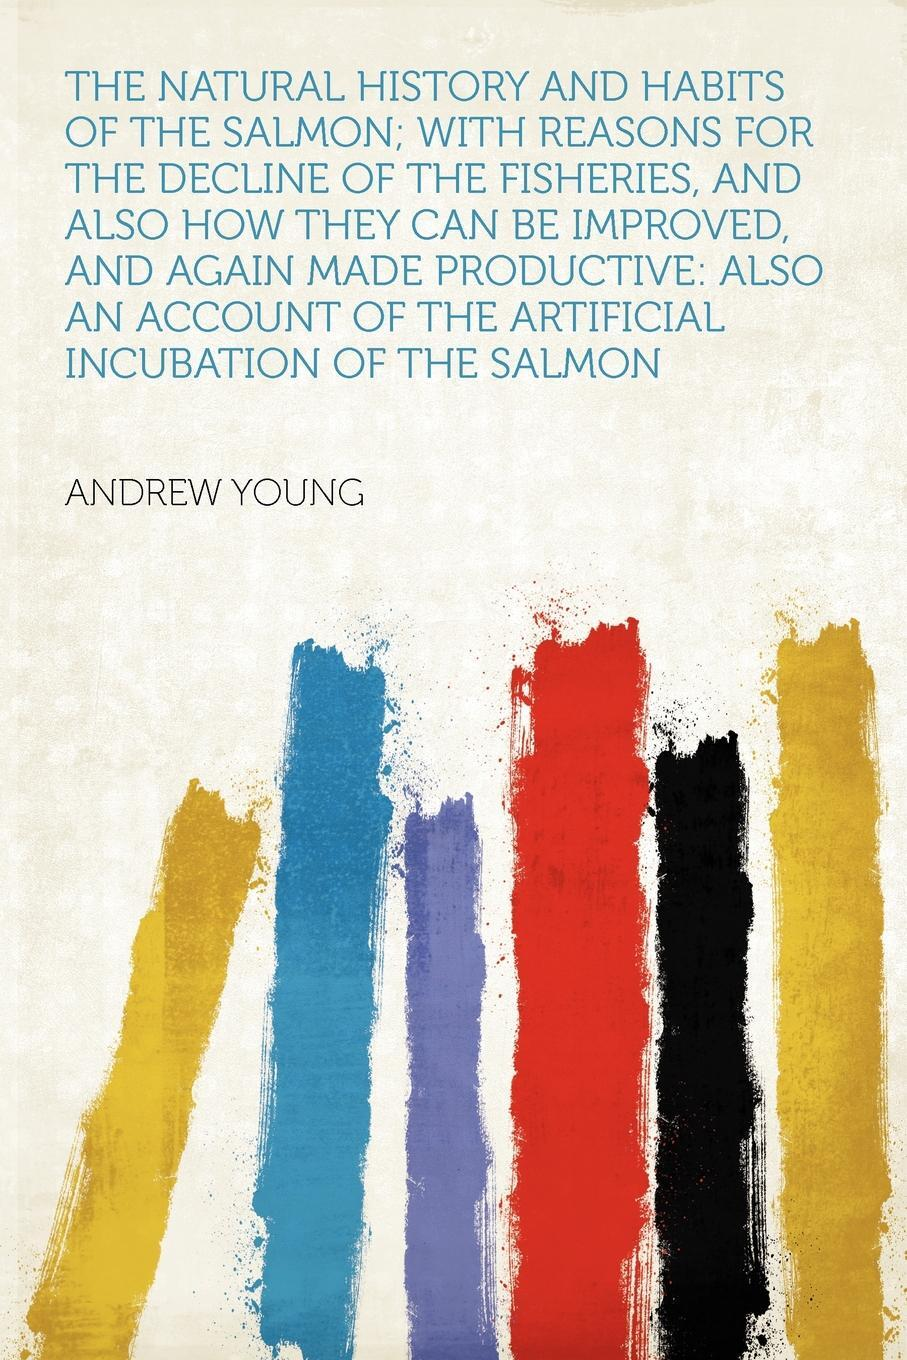 The Natural History and Habits of the Salmon; With Reasons for the Decline of the Fisheries, and Also How They Can Be Improved, and Again Made Productive. Also an Account of the Artificial Incubation of the Salmon. Andrew Young